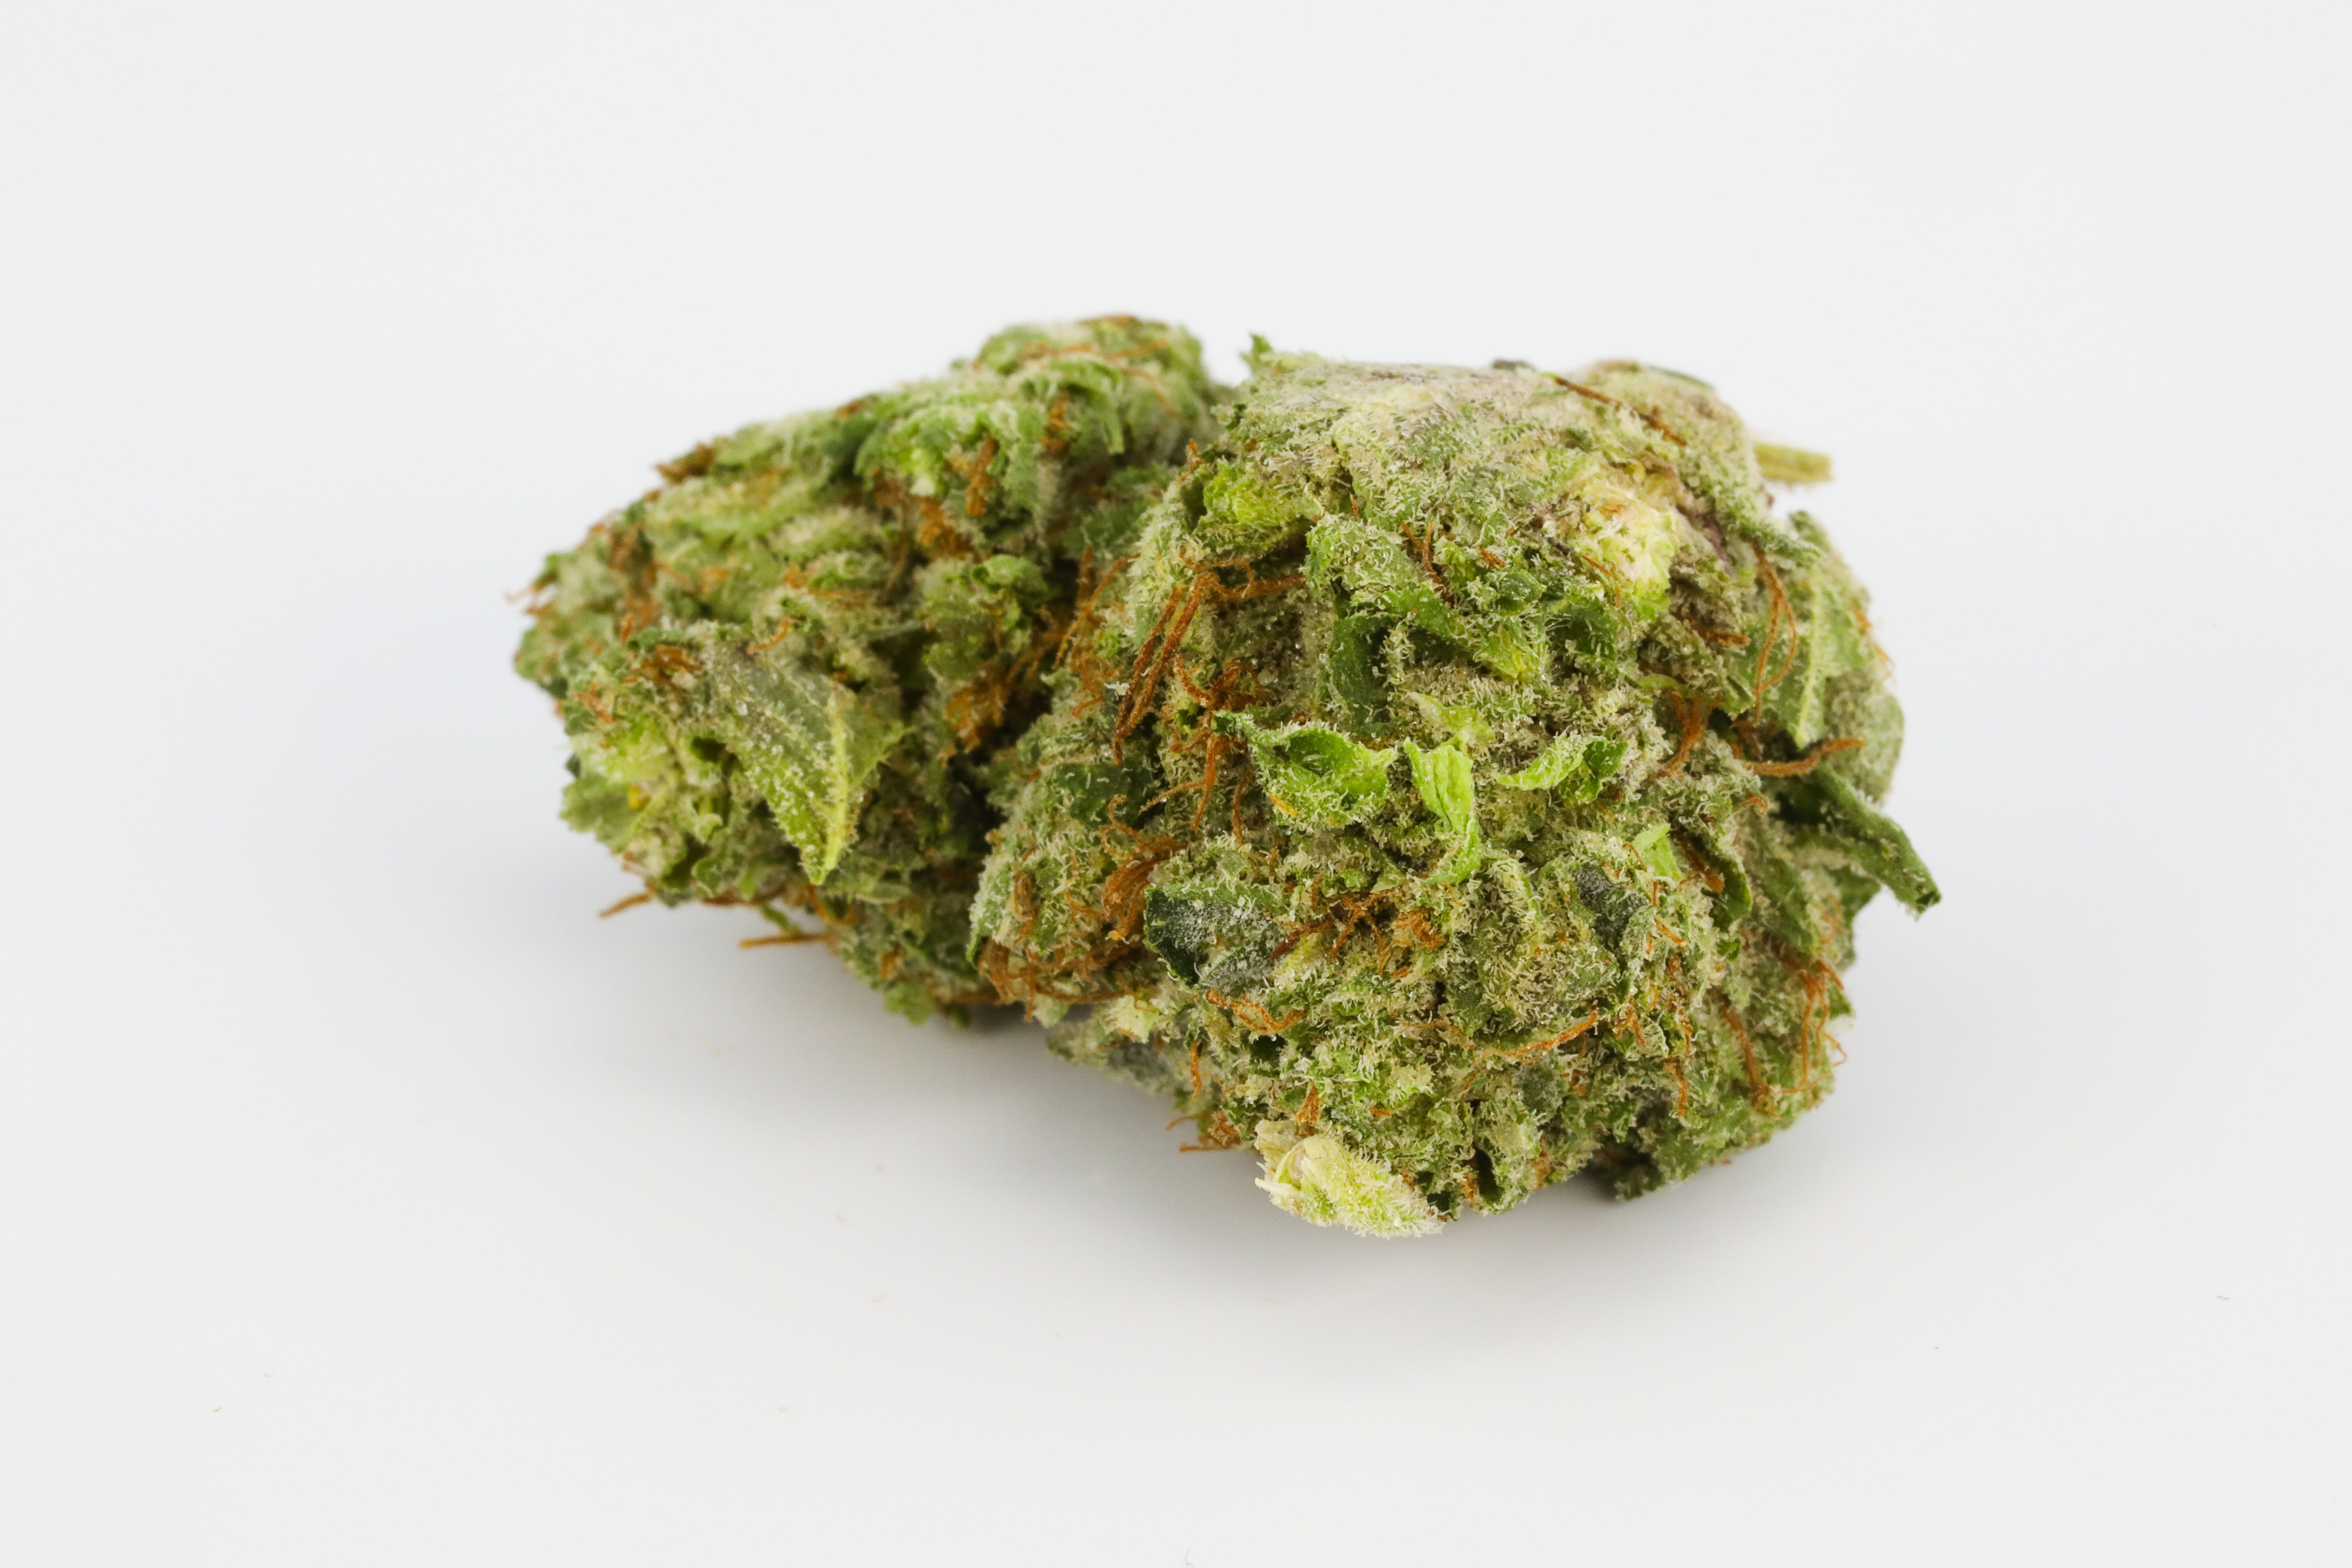 0G8A3214 What Are Landrace Strains? Heres Everything You Need To Know